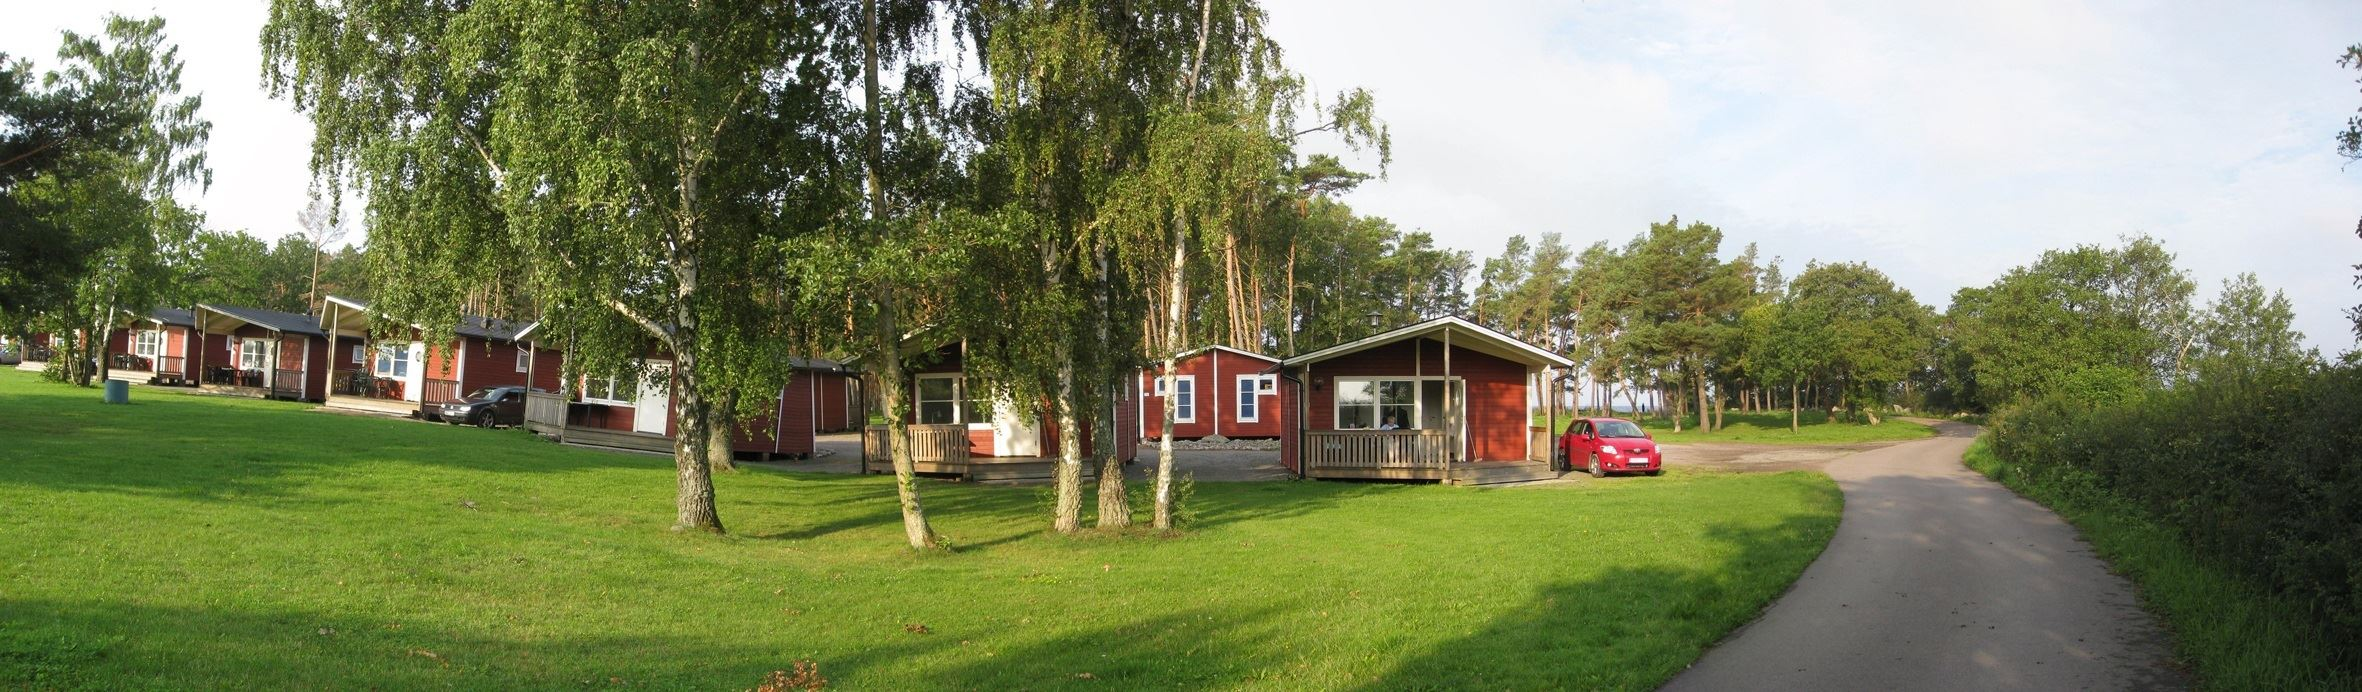 Kapelludden Camping & Stugor / Cottages